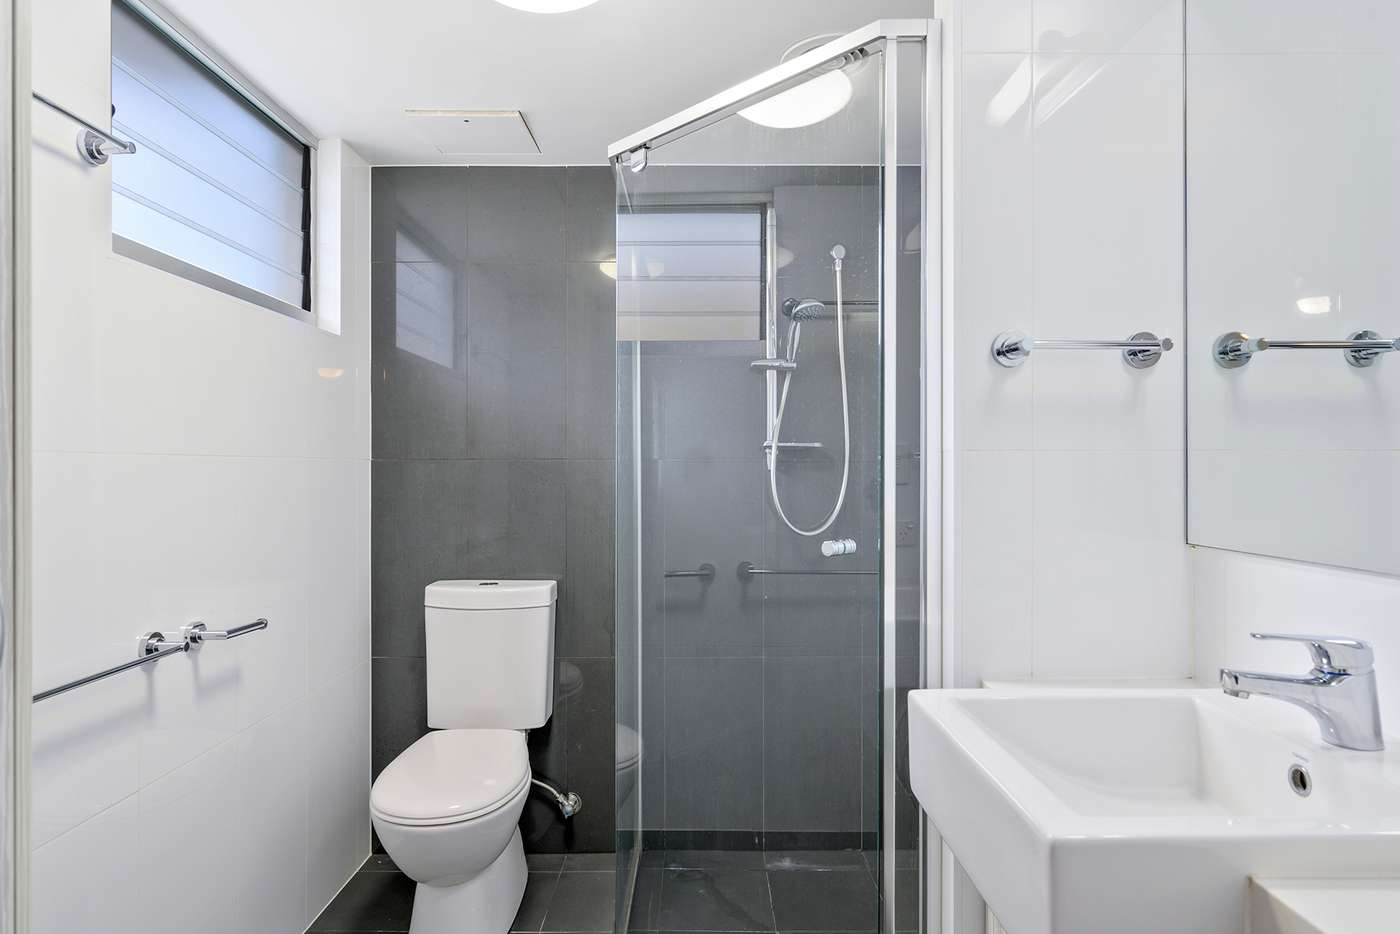 Sixth view of Homely apartment listing, 1/58 Durham Street, St Lucia QLD 4067